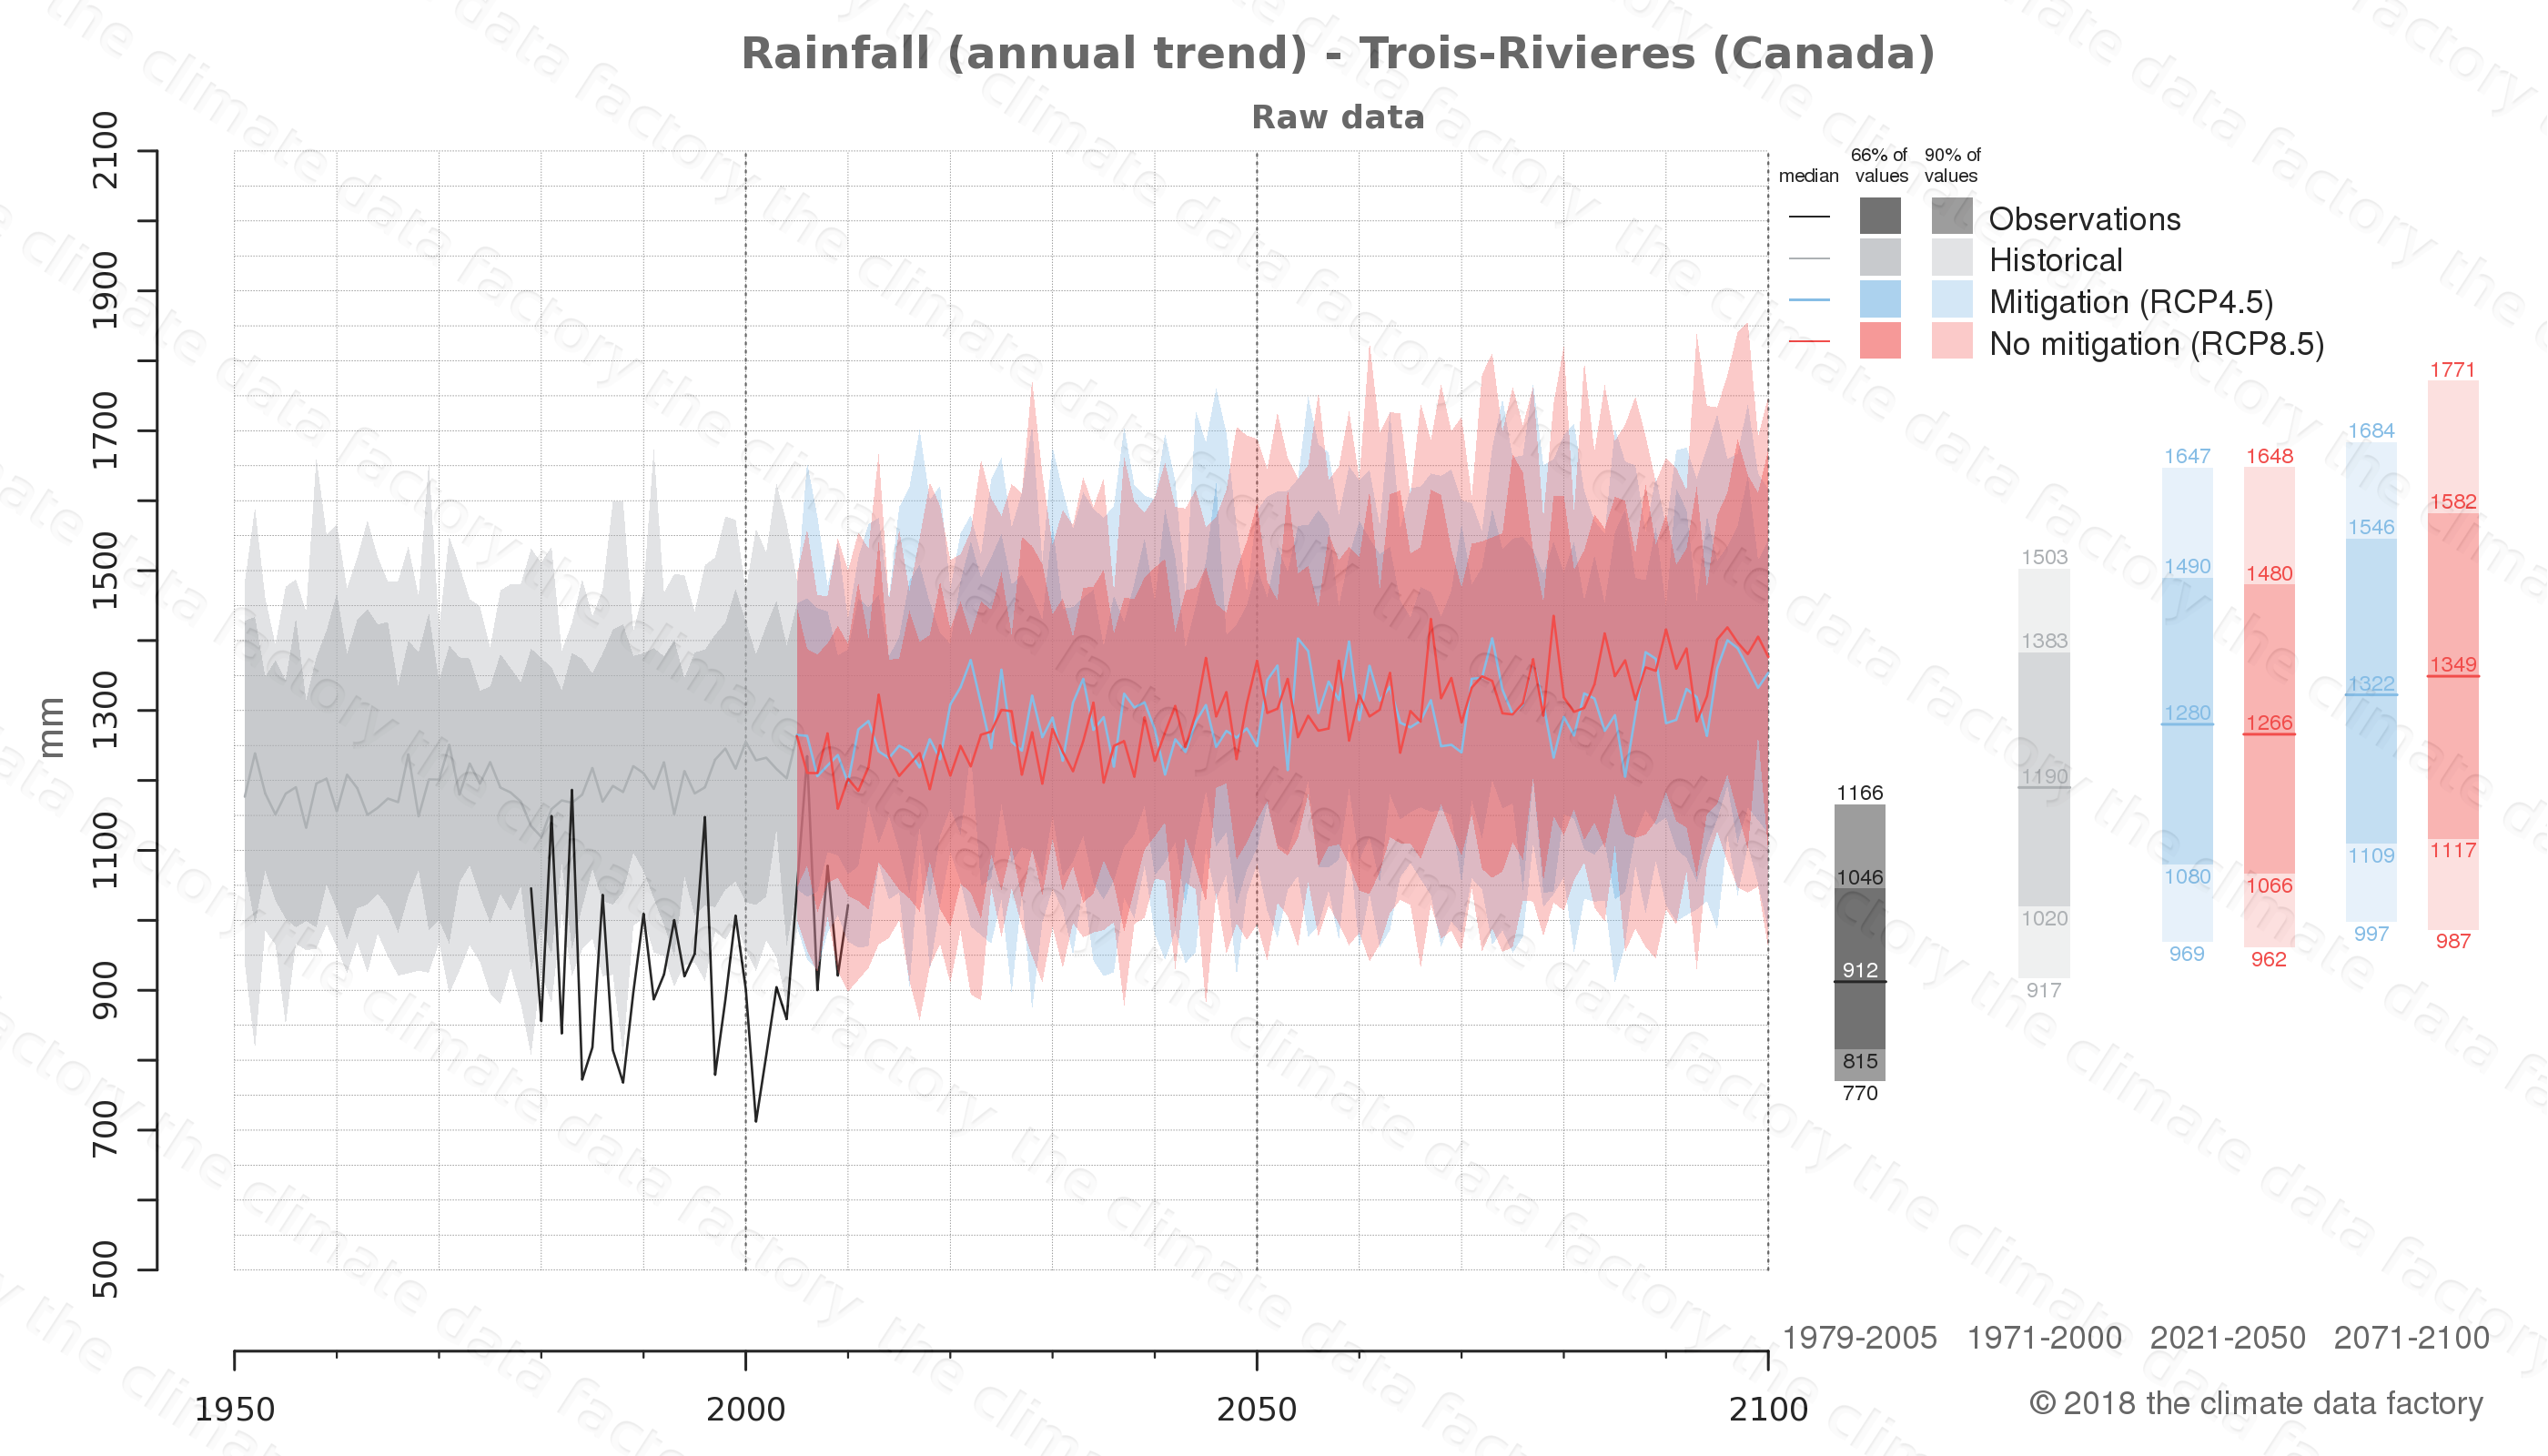 climate change data policy adaptation climate graph city data rainfall trois-rivieres canada